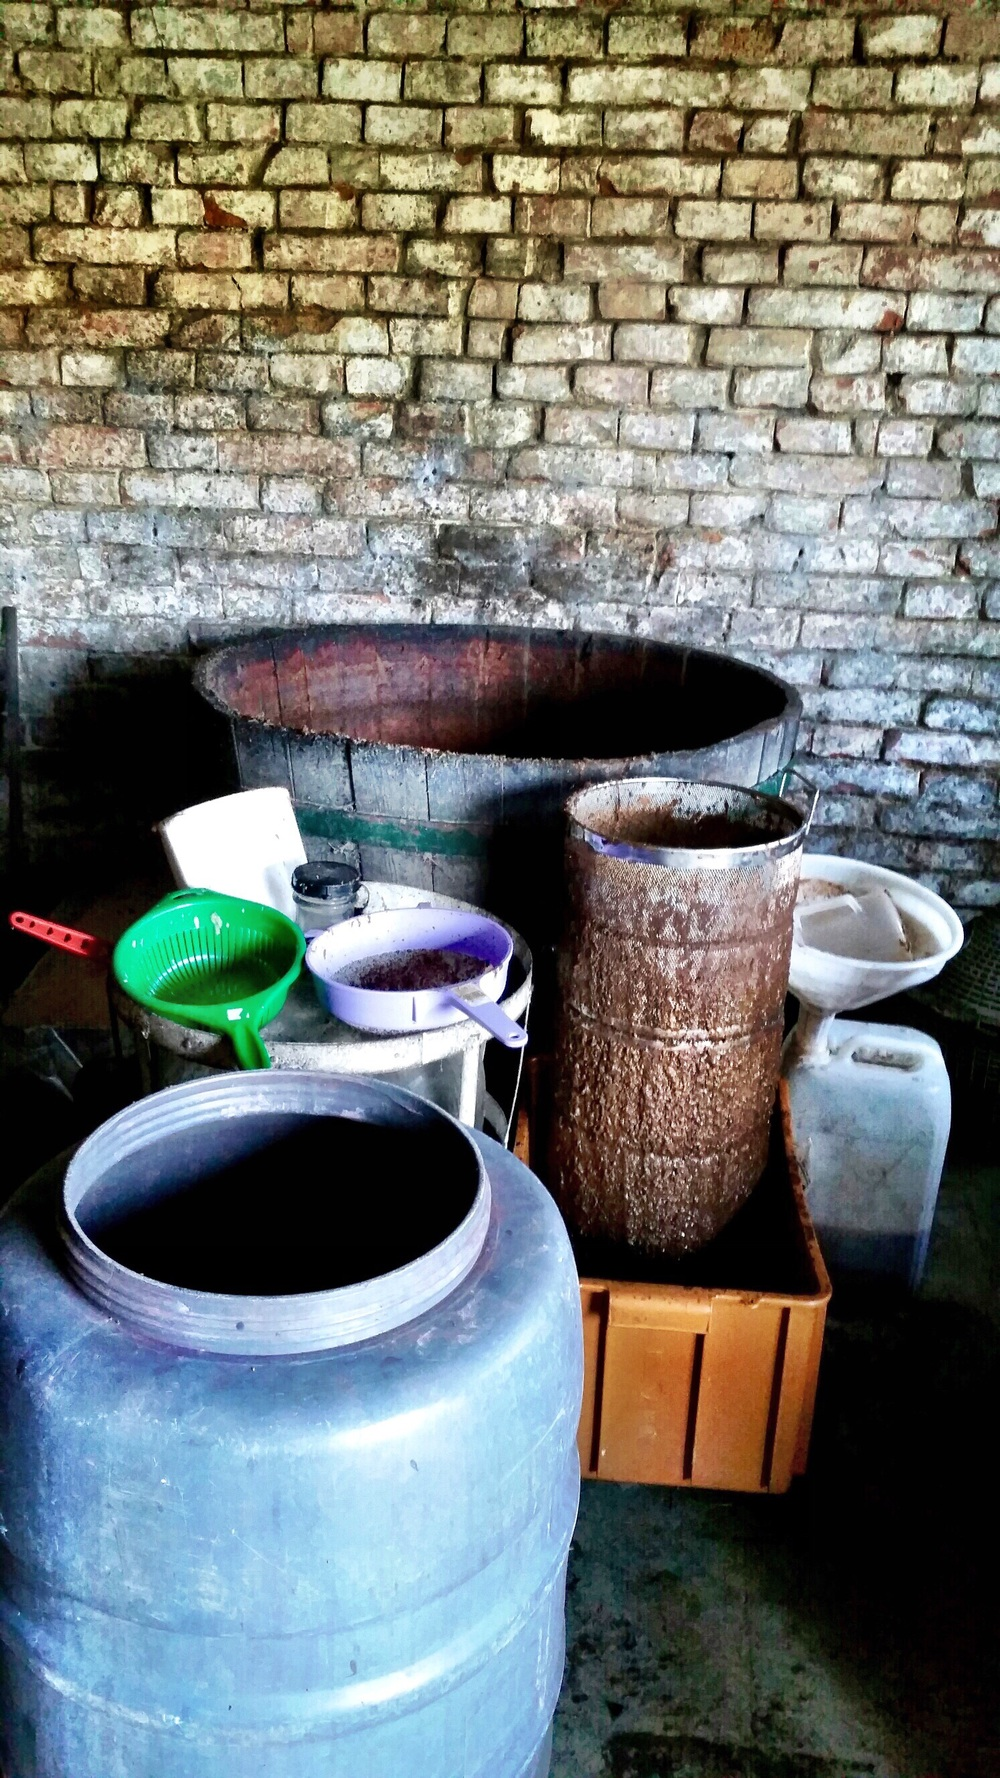 Tubs and sieves for vinegar production